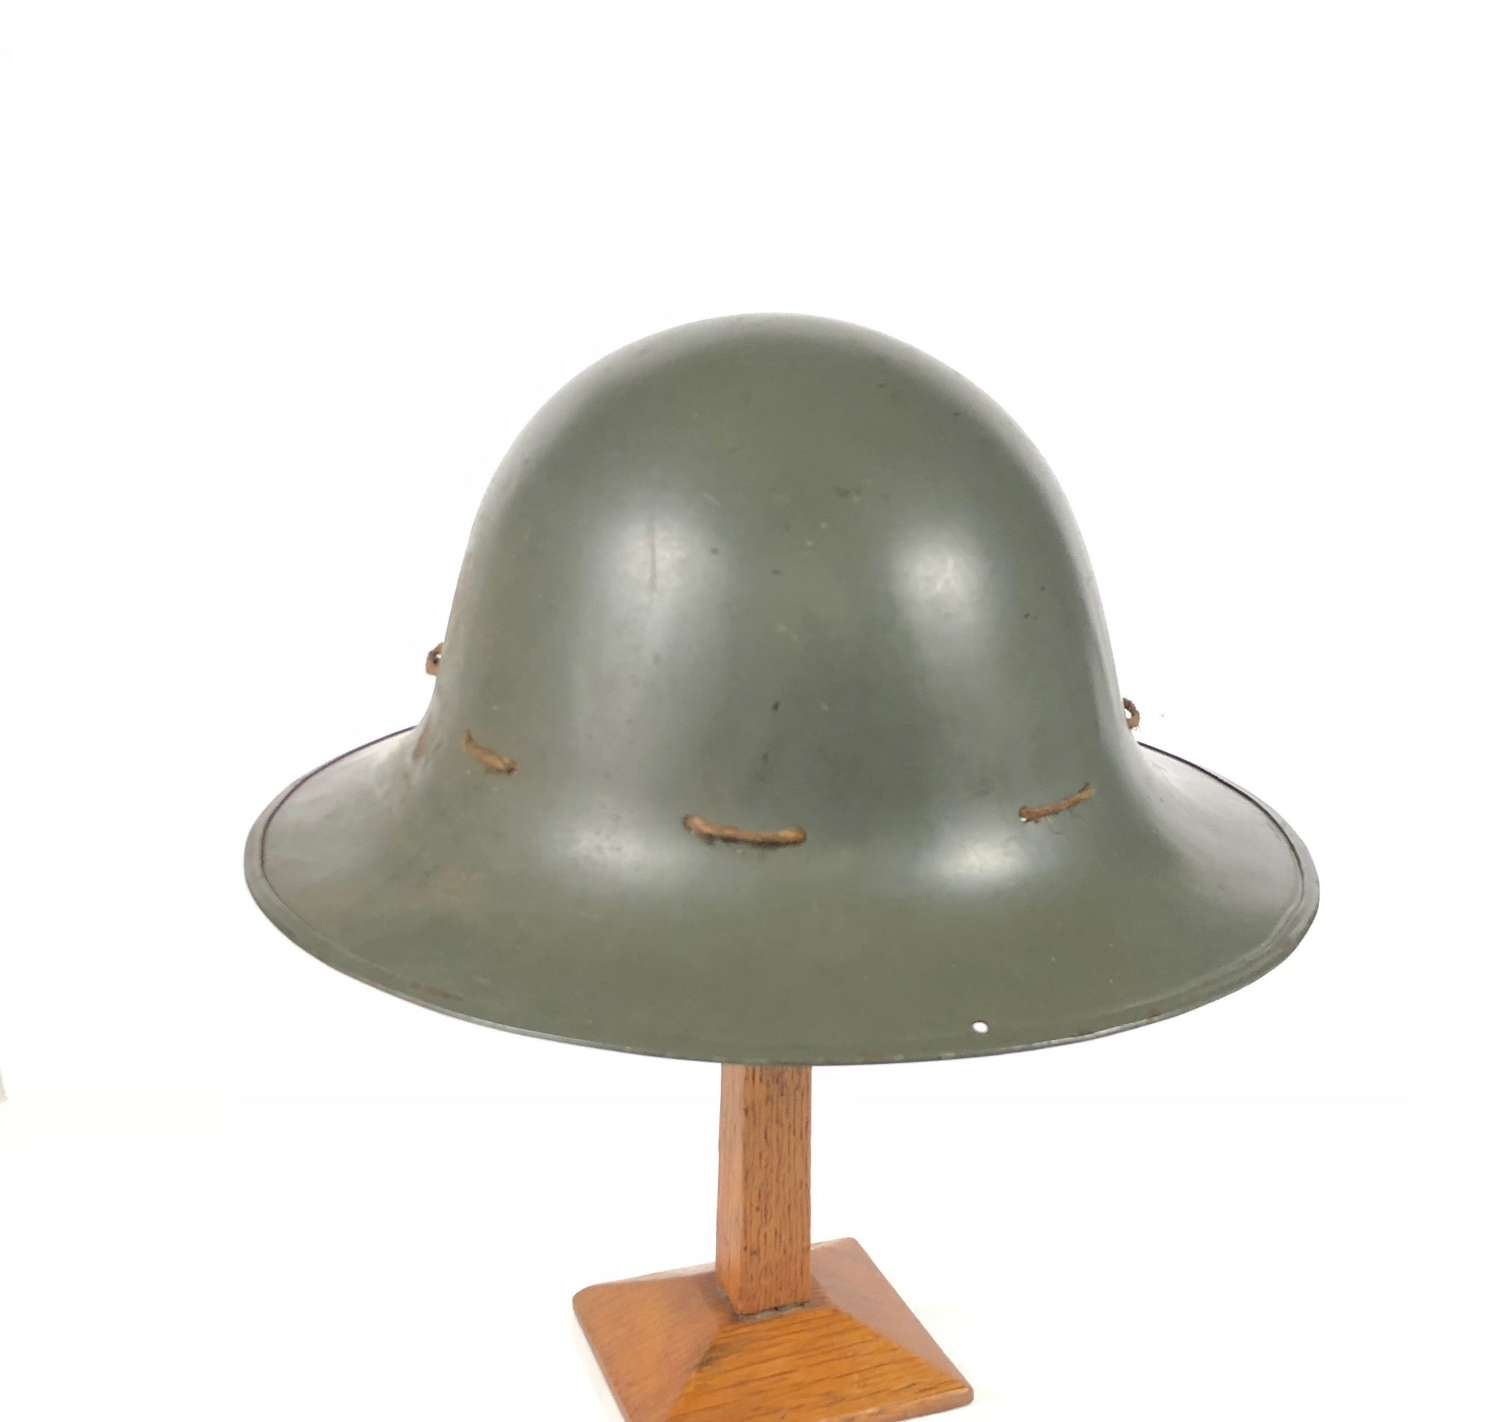 WW2 1941 Home Front Zuckerman helmet.